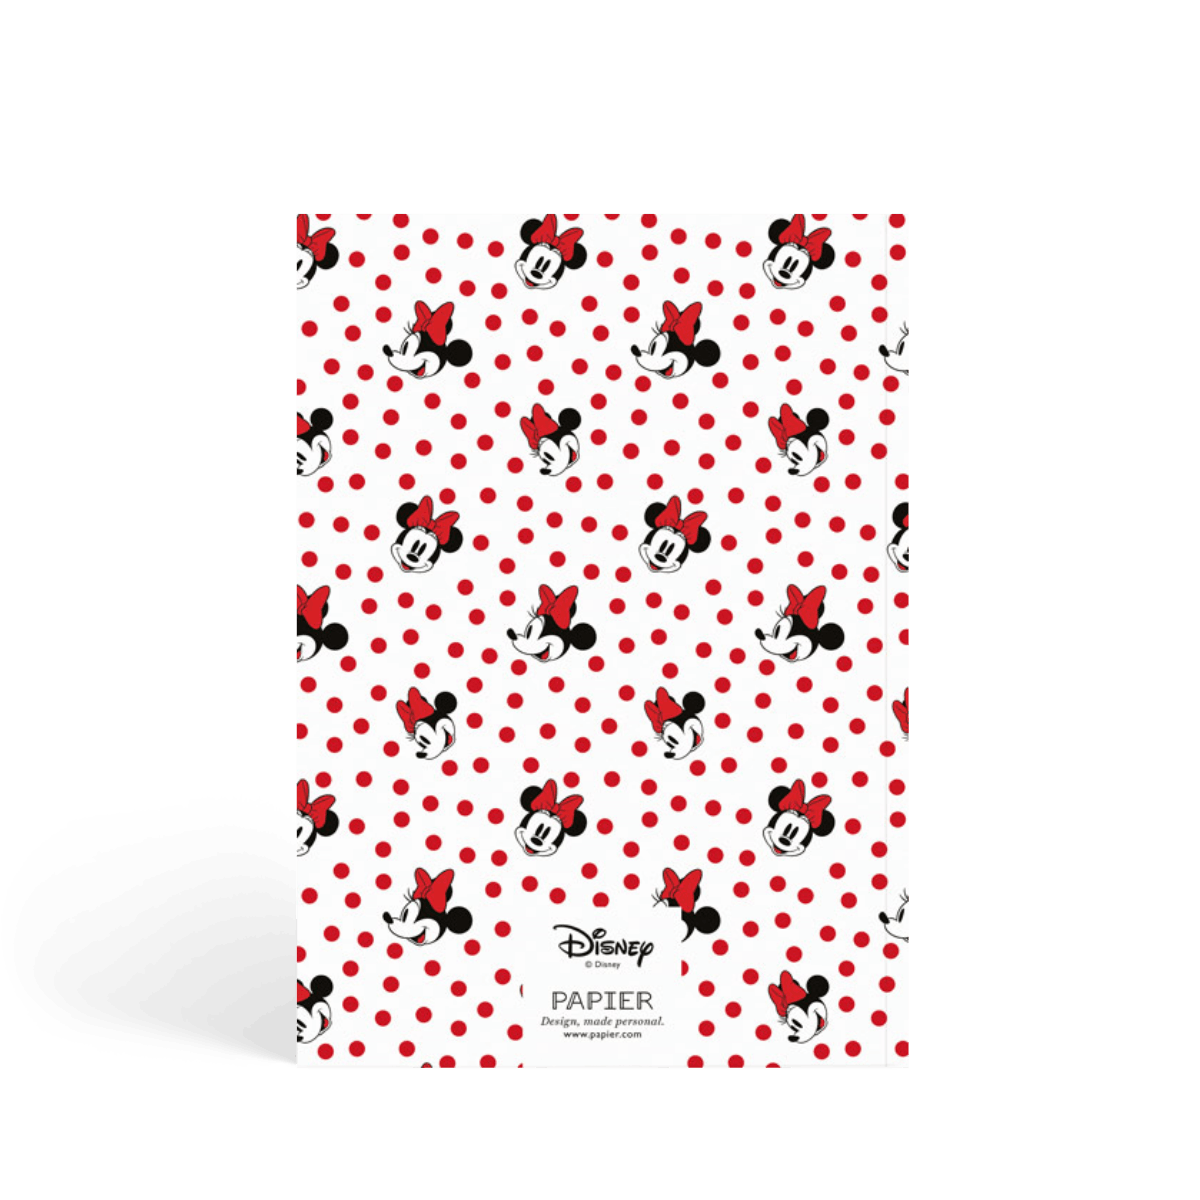 Https%3a%2f%2fwww.papier.com%2fproduct image%2f56020%2f5%2fminnie mouse 13459 back 1542369381.png?ixlib=rb 1.1